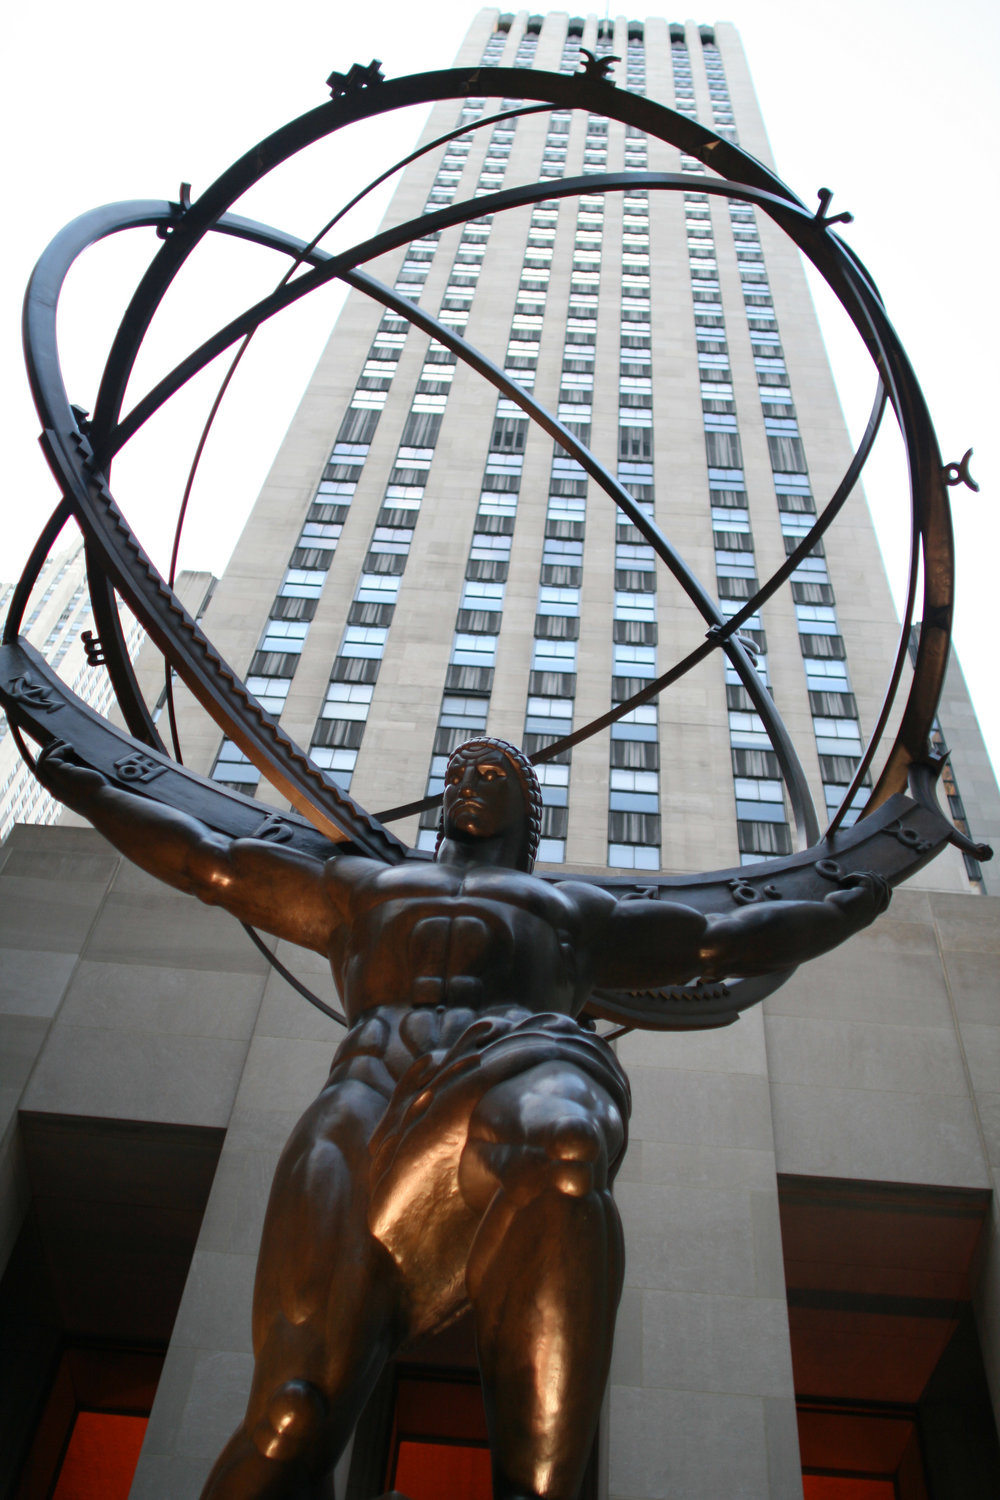 Lee Lawrie's Atlas shoulders the celestial spheres outside Rockefeller Center